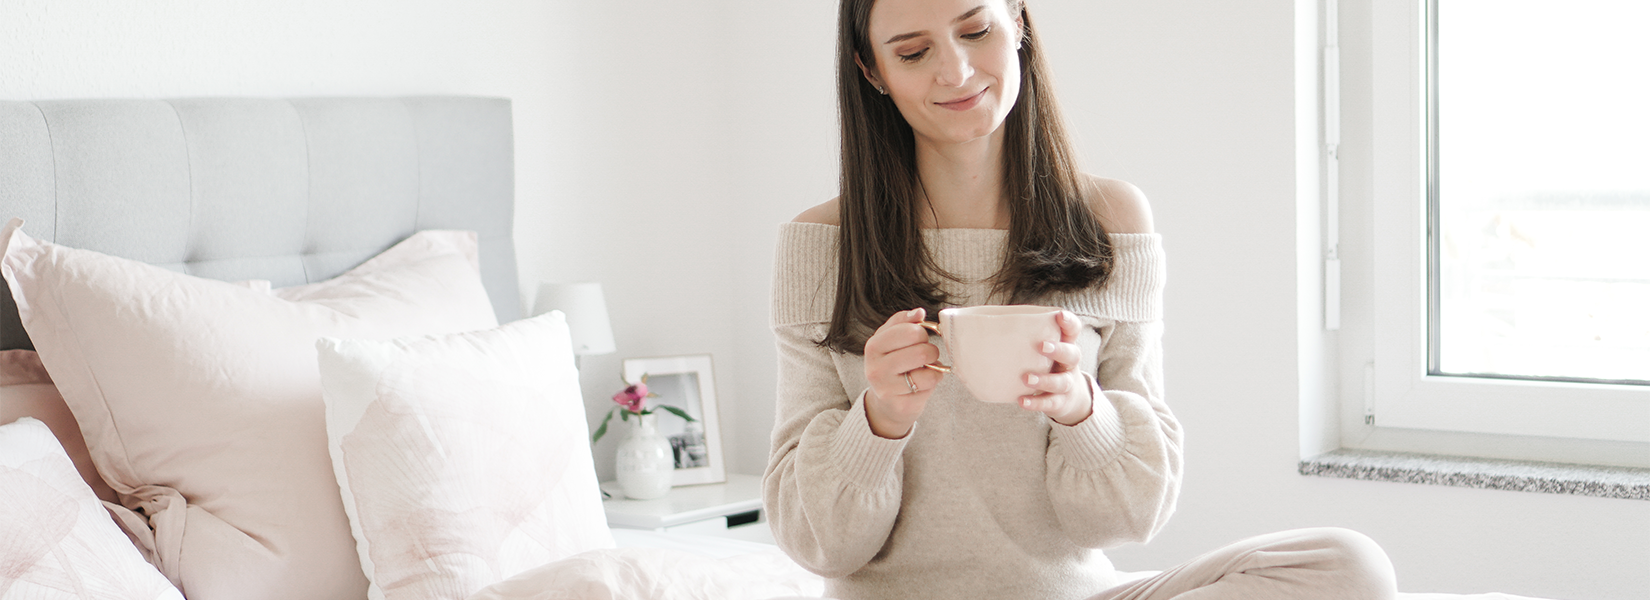 10 Tips For Practicing Self-Care During Covid-19